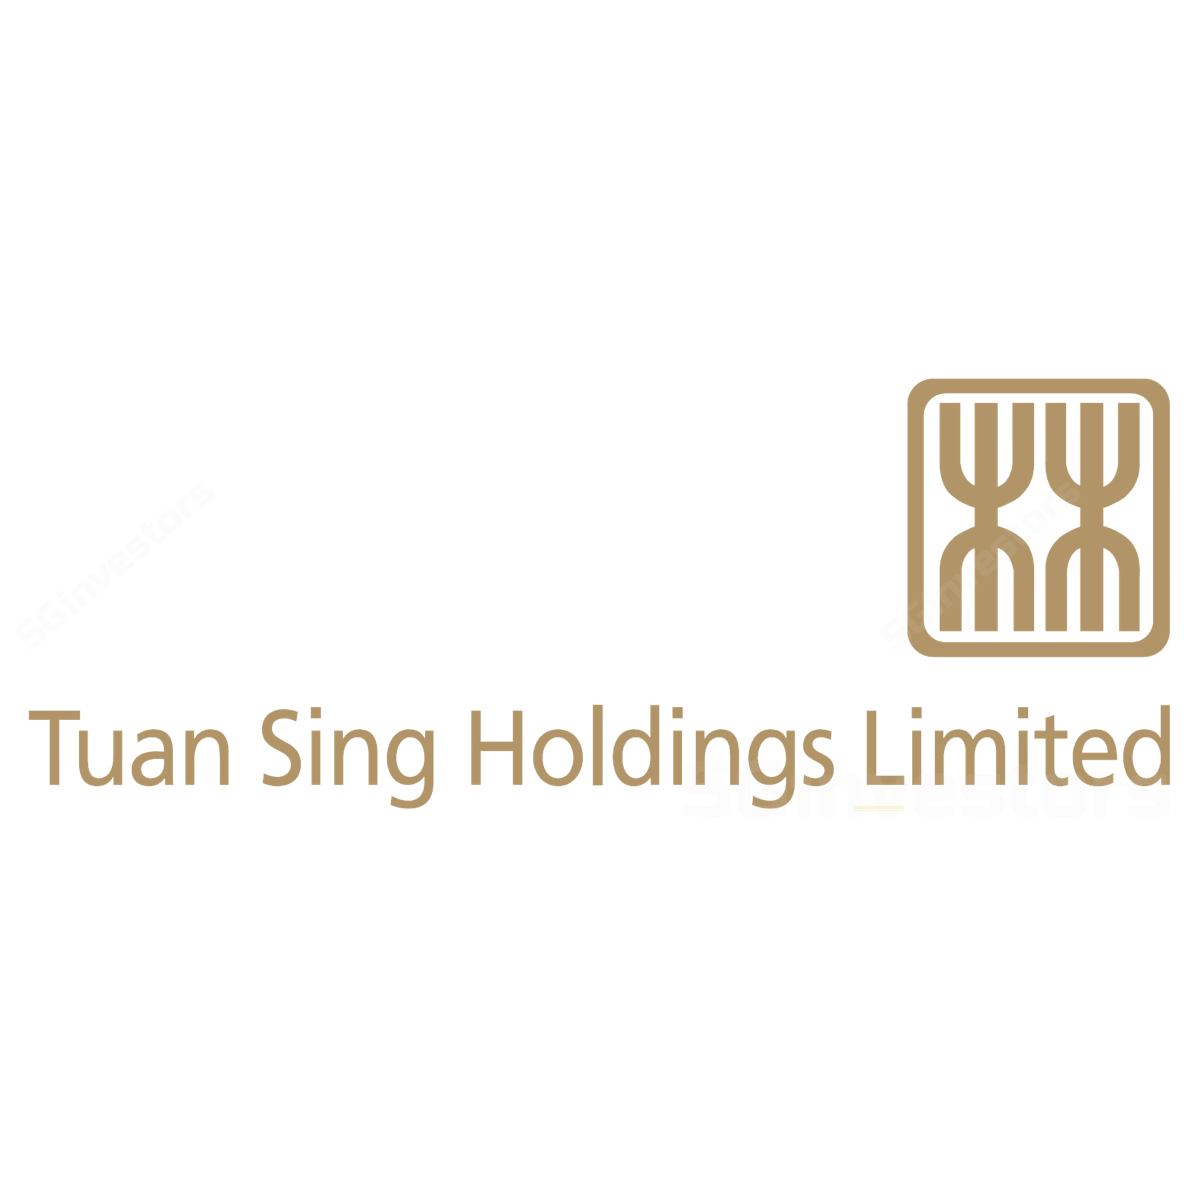 Tuan Sing Holdings (TSH SP) - UOB Kay Hian 2018-01-29: 4Q17 S$44.9m Revaluation Gains Amidst Bullish Macro Conditions